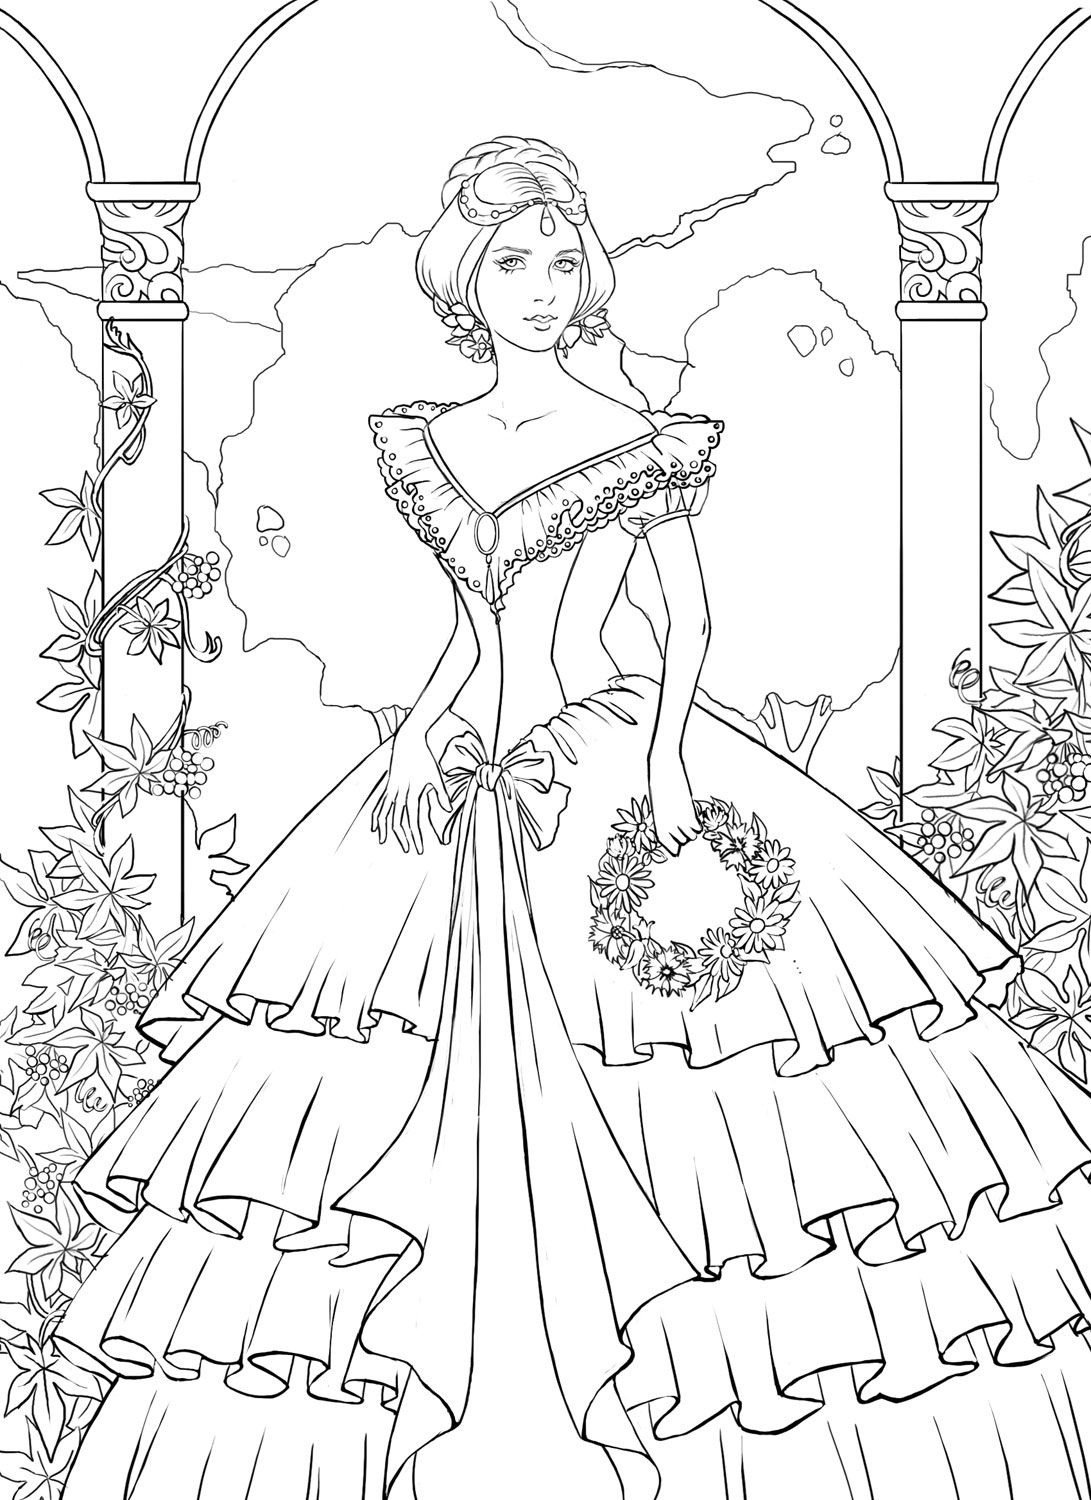 Image Detail For Complex Princess Coloring Pages Detailed Coloring Pages Princess Coloring Pages Coloring Pages